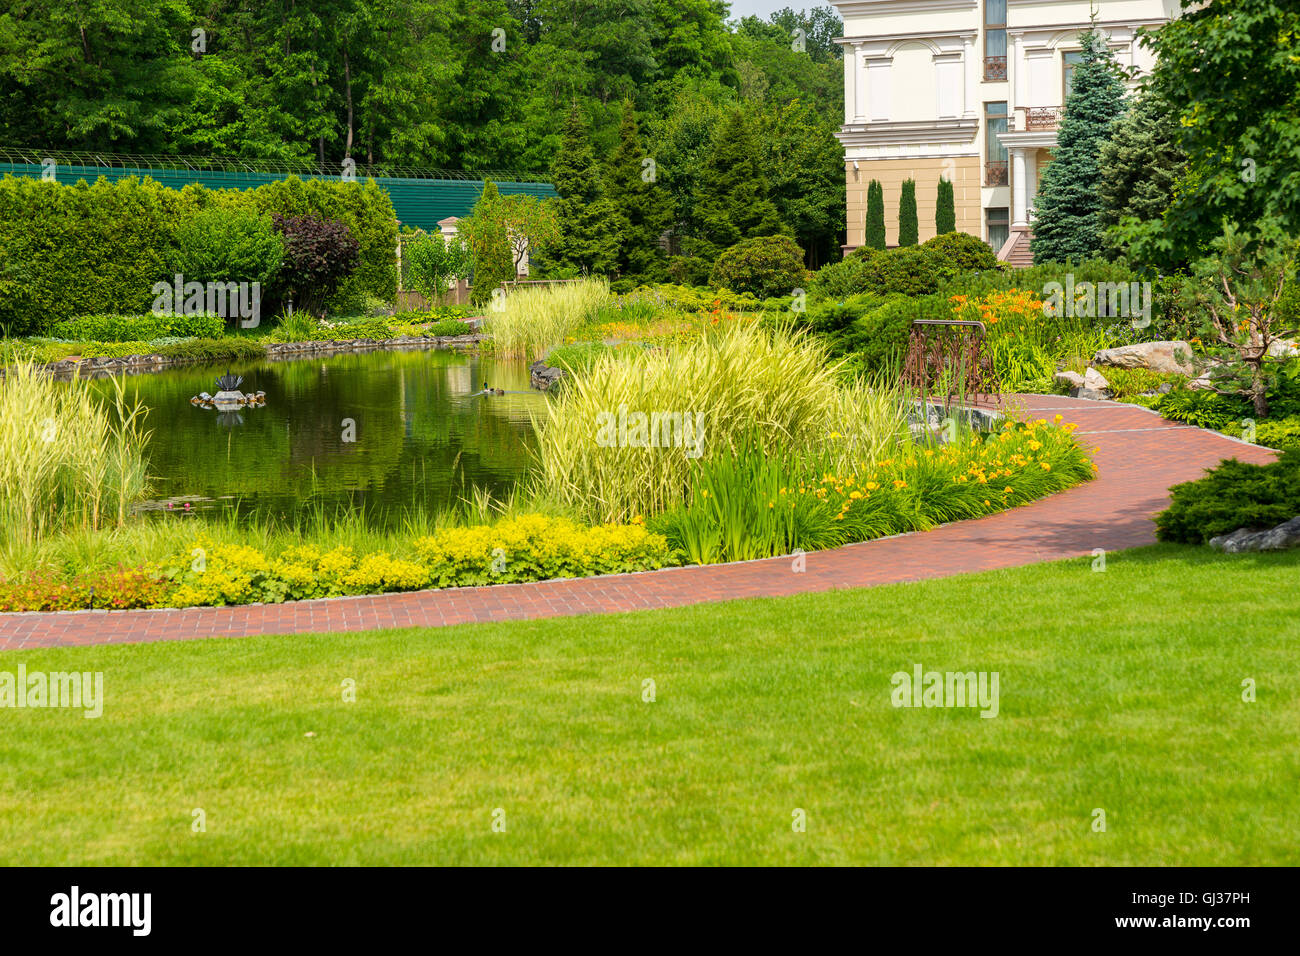 Landscape Design With Beautiful Man Made Lake And Different Trees, Bushes,  Flowers